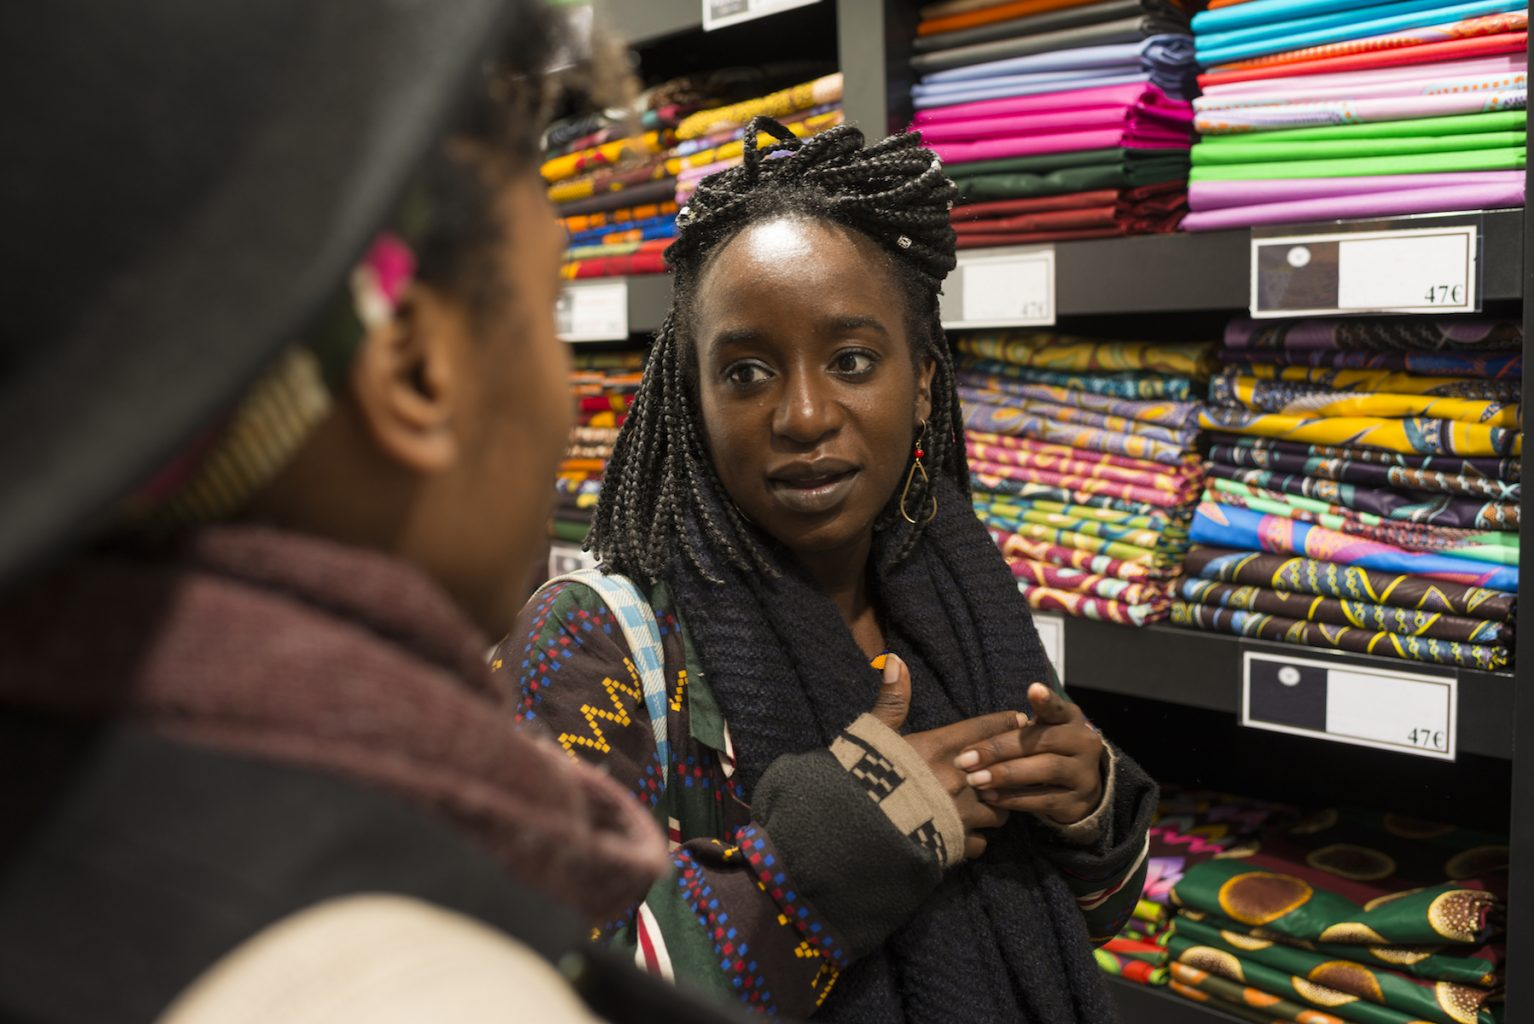 Airbnb experience host Chayet talks to a guest on her Paris Airbnb experience African Fashion in the City